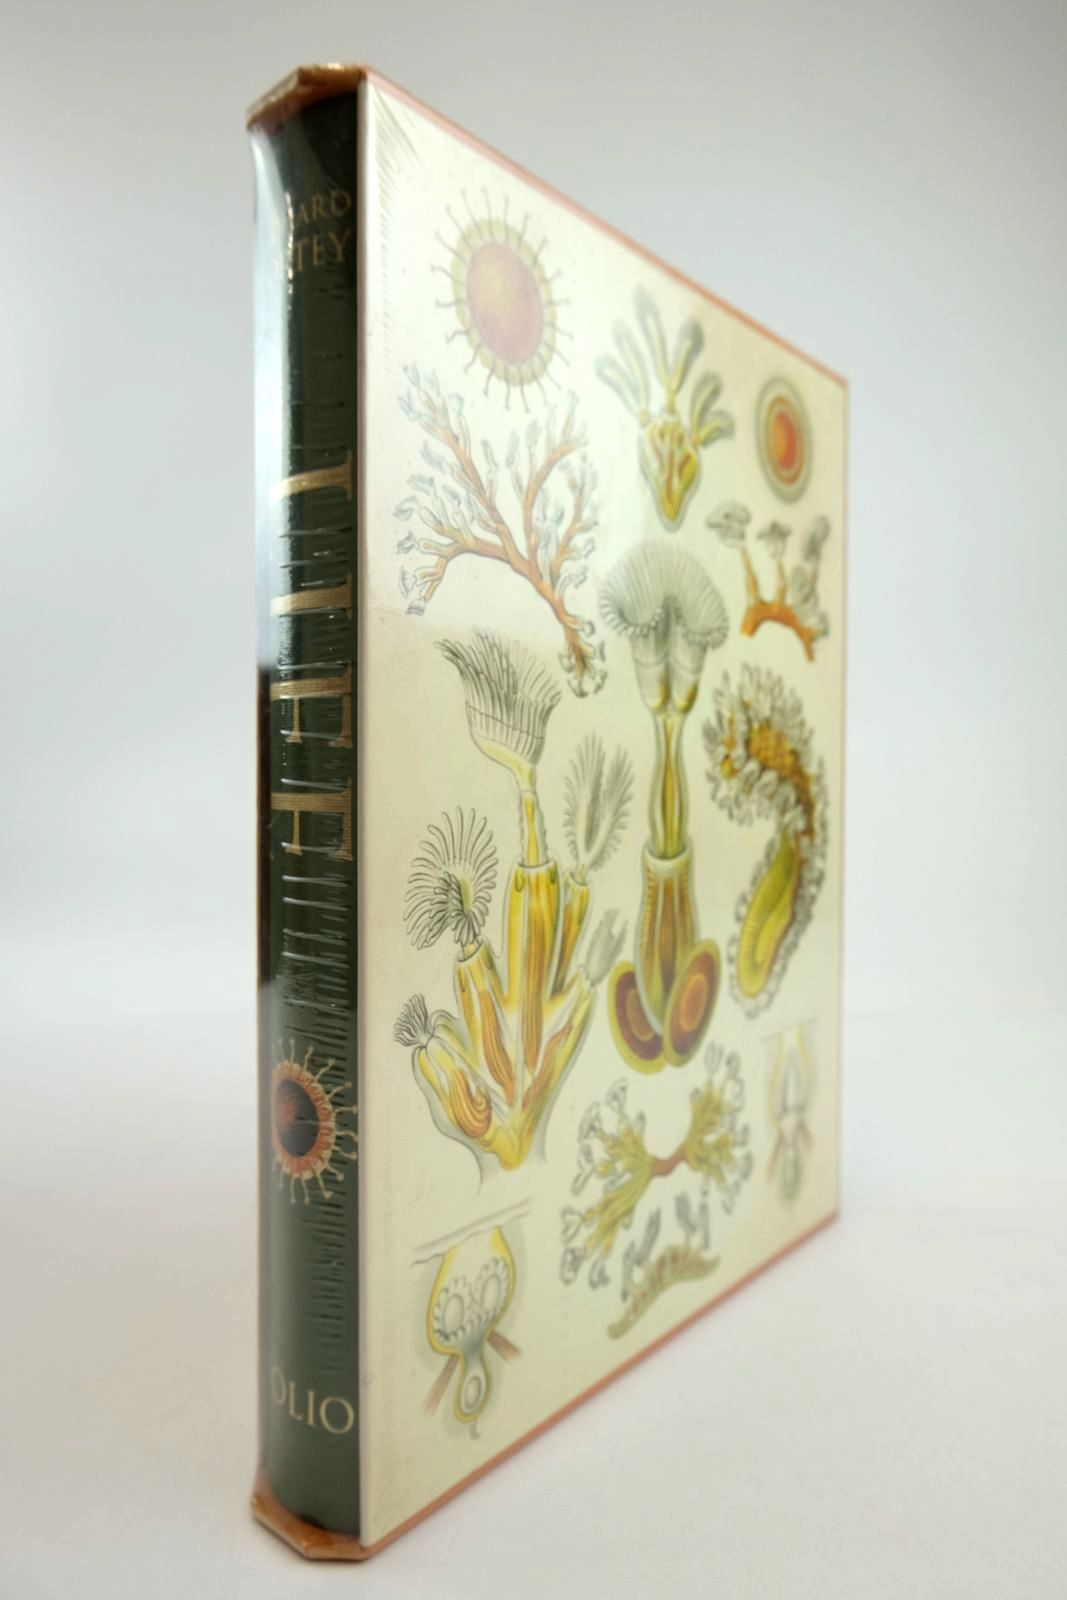 Photo of LIFE written by Fortey, Richard published by Folio Society (STOCK CODE: 2134246)  for sale by Stella & Rose's Books